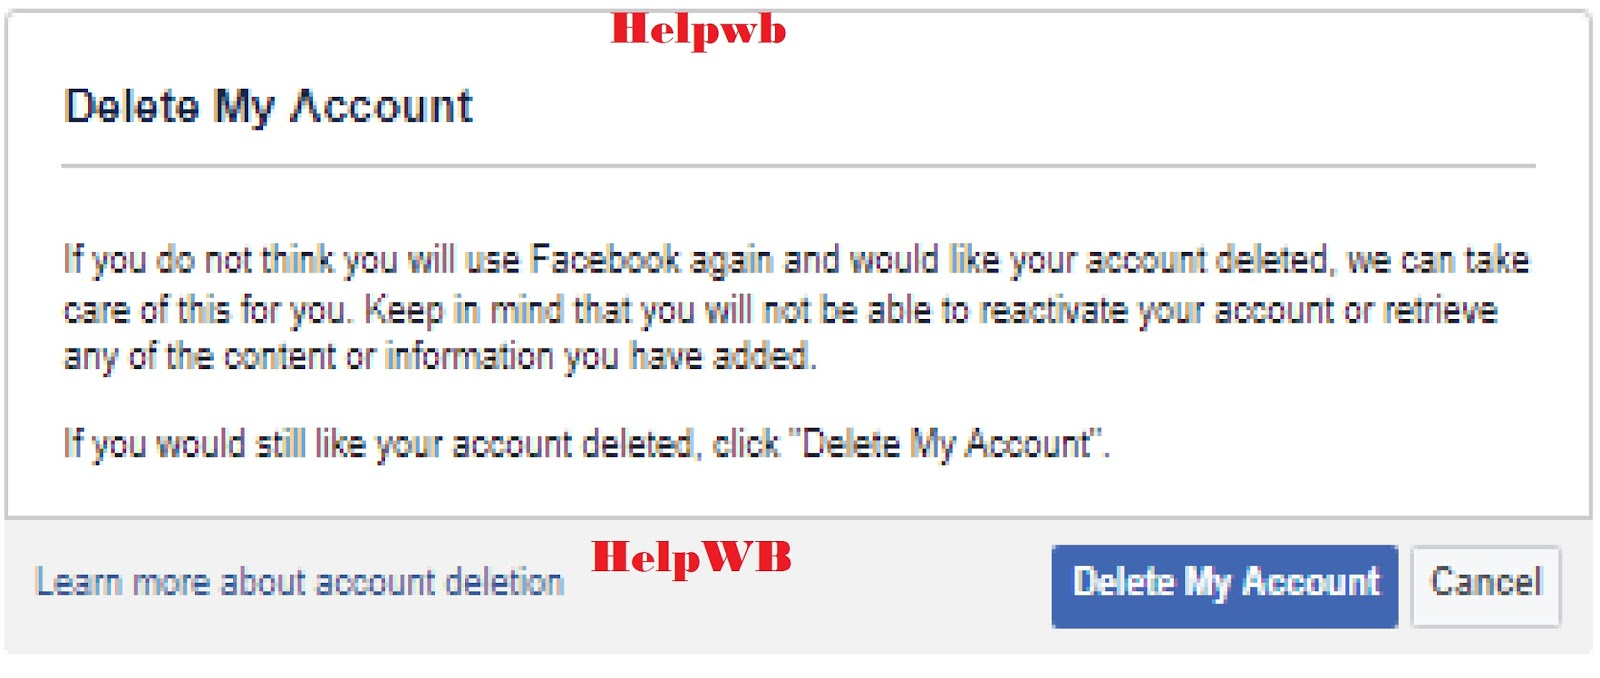 Facebook account permanently delete or deactivate kivabe kore helpwb facebook account permanently delete or deactivate kivabe kore ccuart Image collections